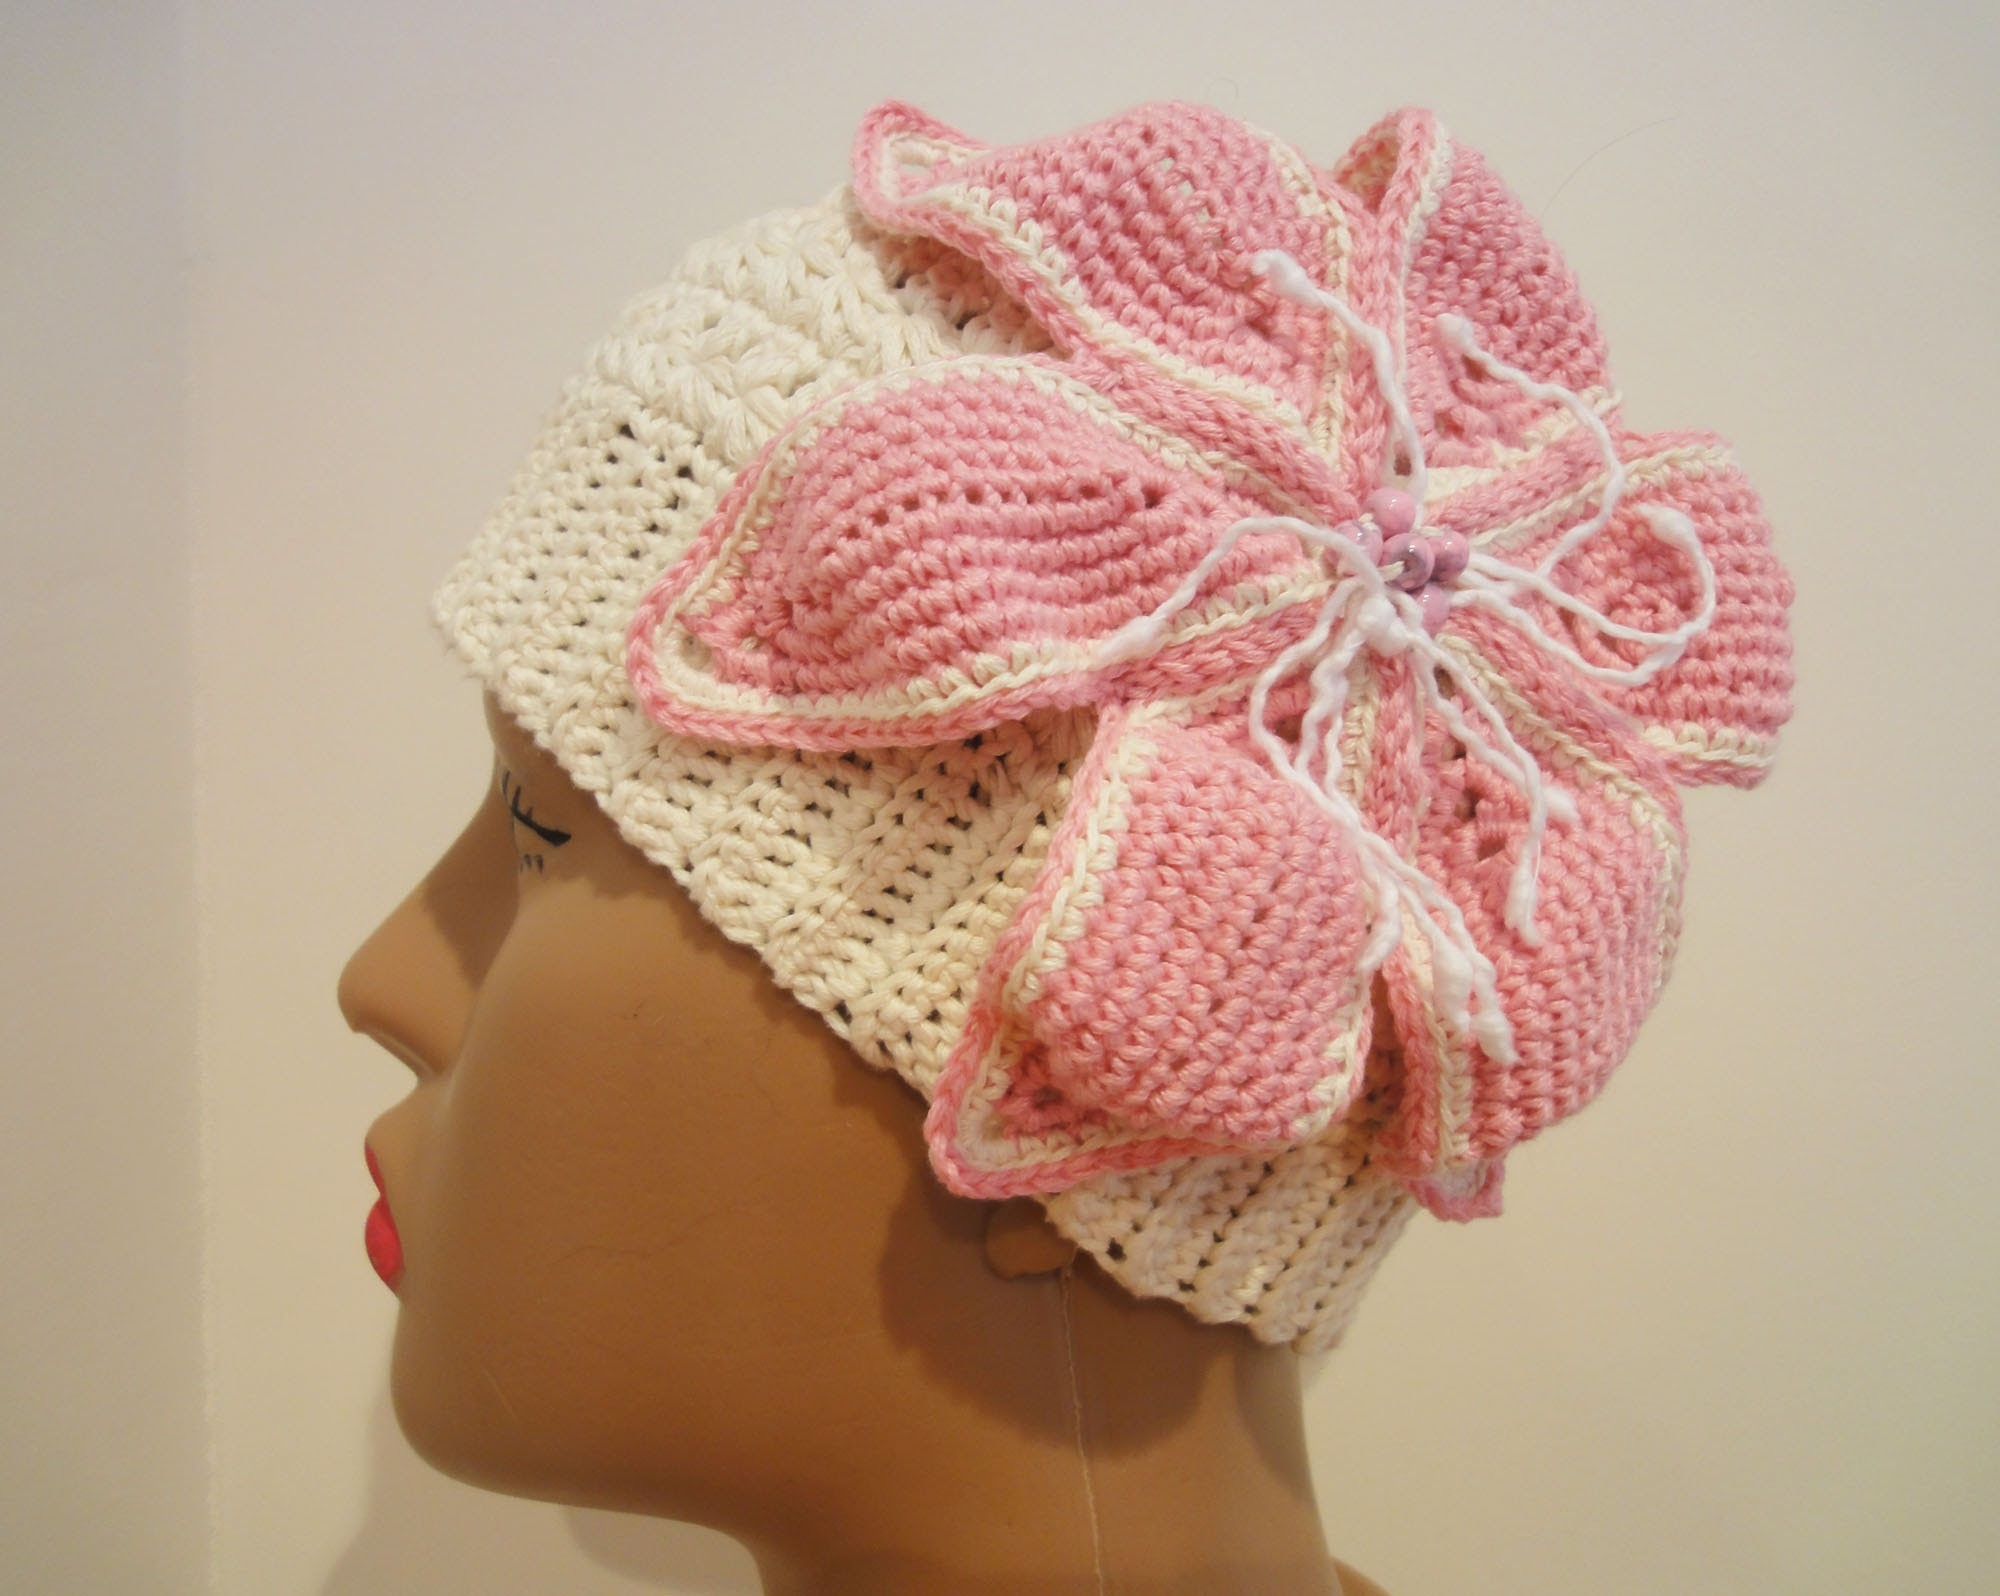 Шапочка с лилией Ч-2 Hat with a lily Crochet P-2